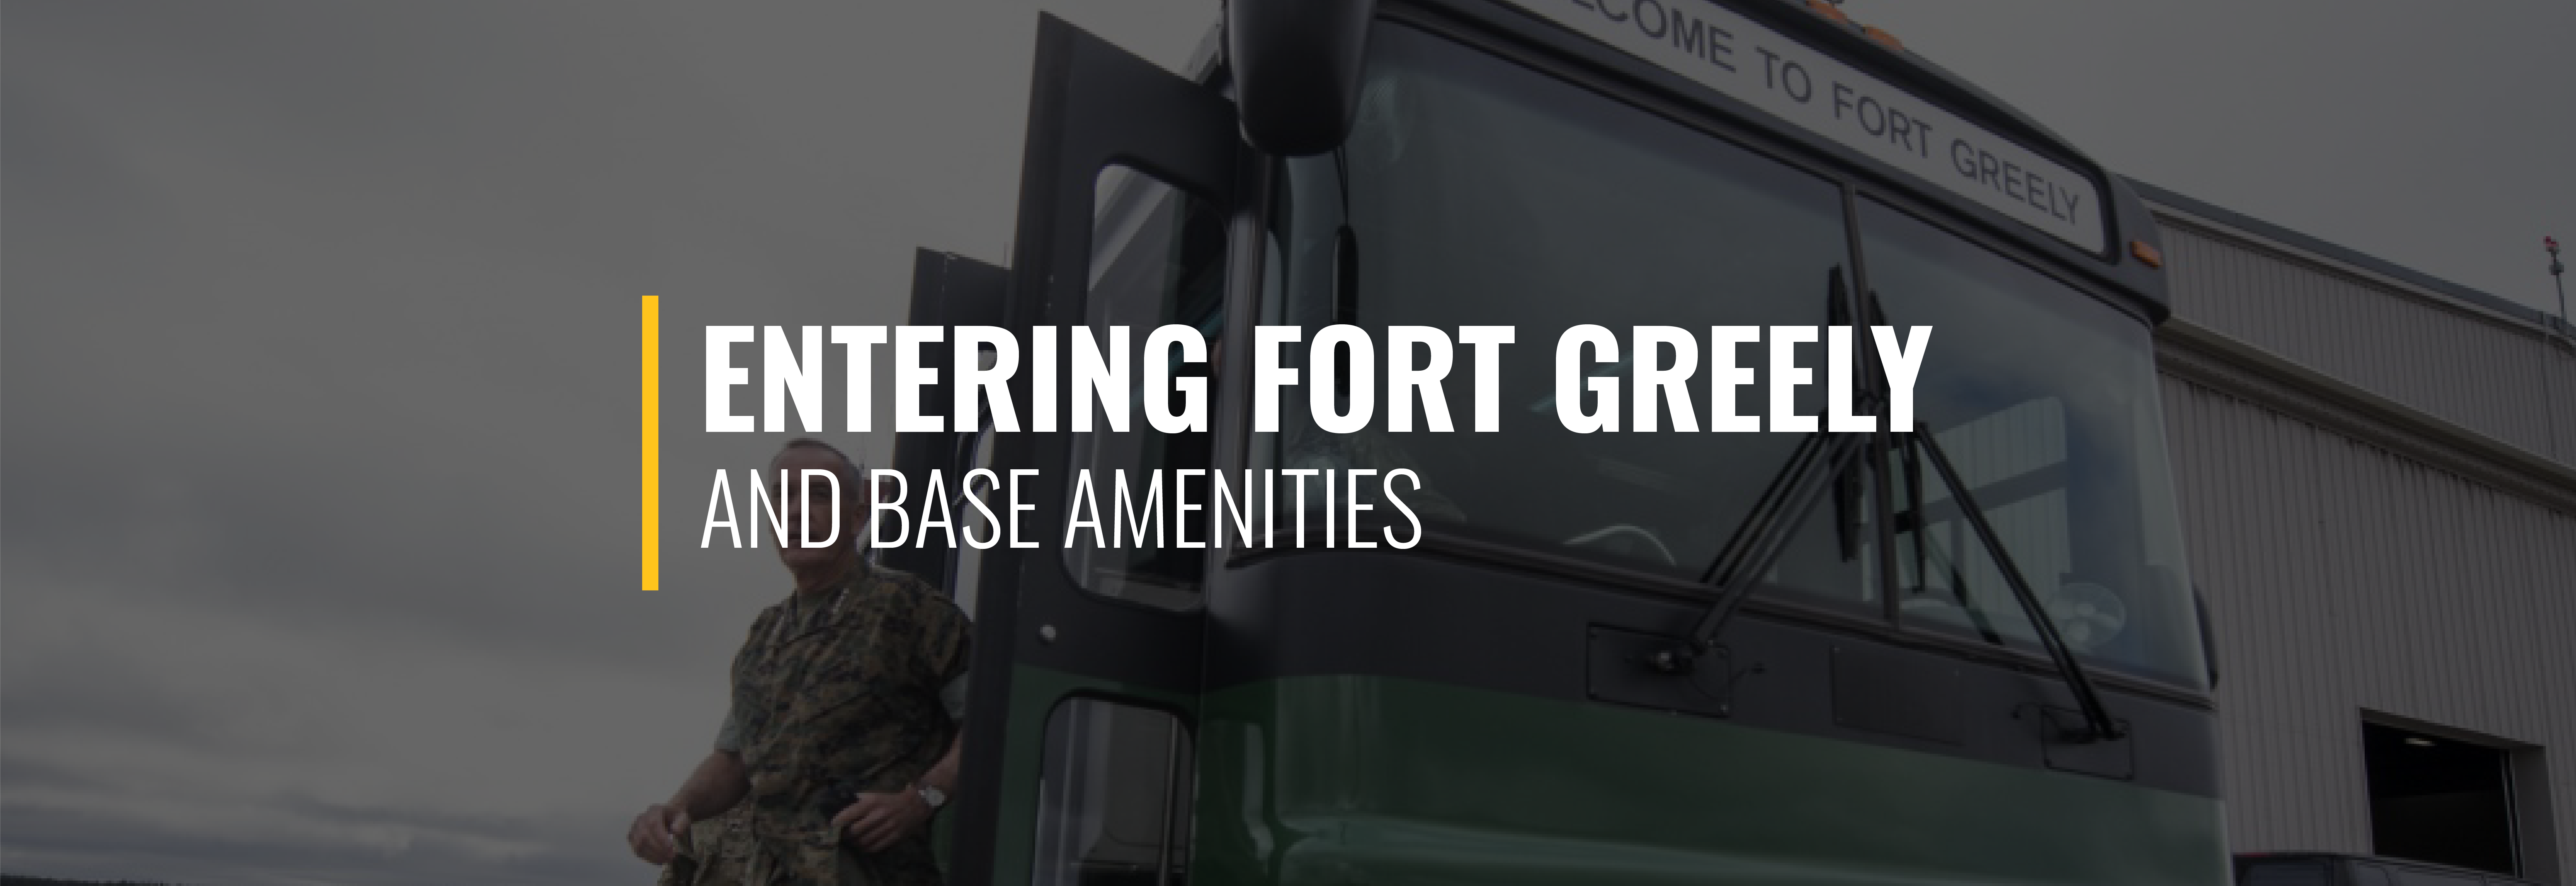 Entering Fort Greely and Base Amenities